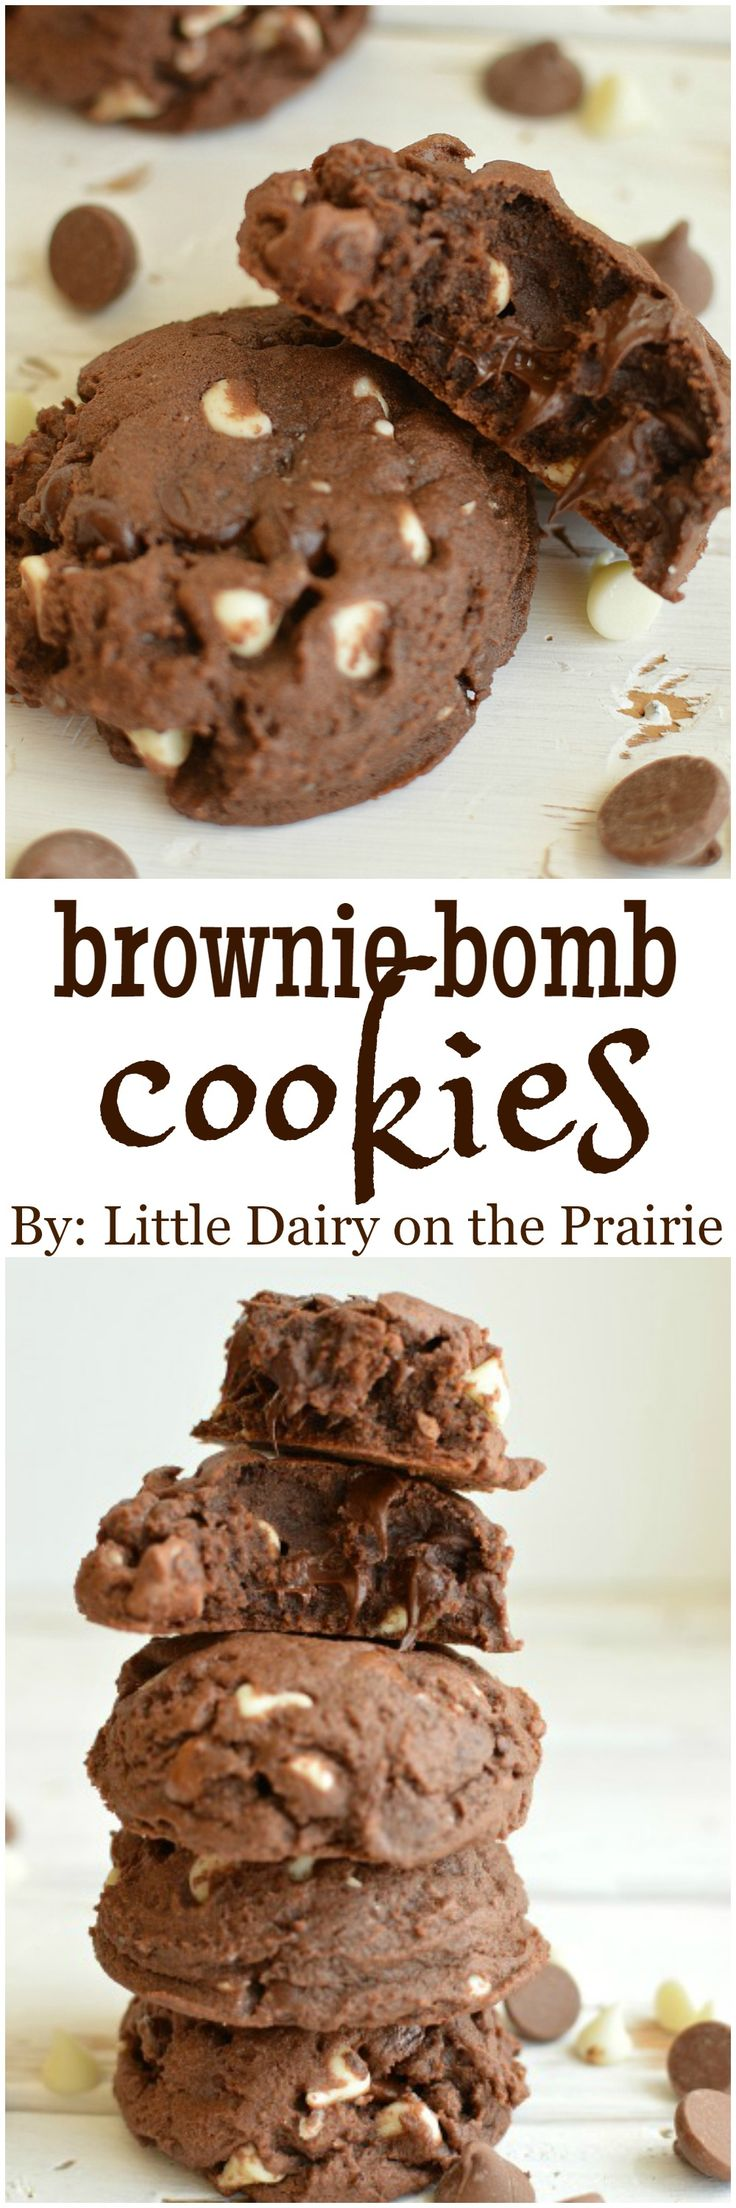 Brownie Bomb Cookies are thick, chewy, and chock full of chocolate goodness! Grab a glass of milk, you're going to want it!